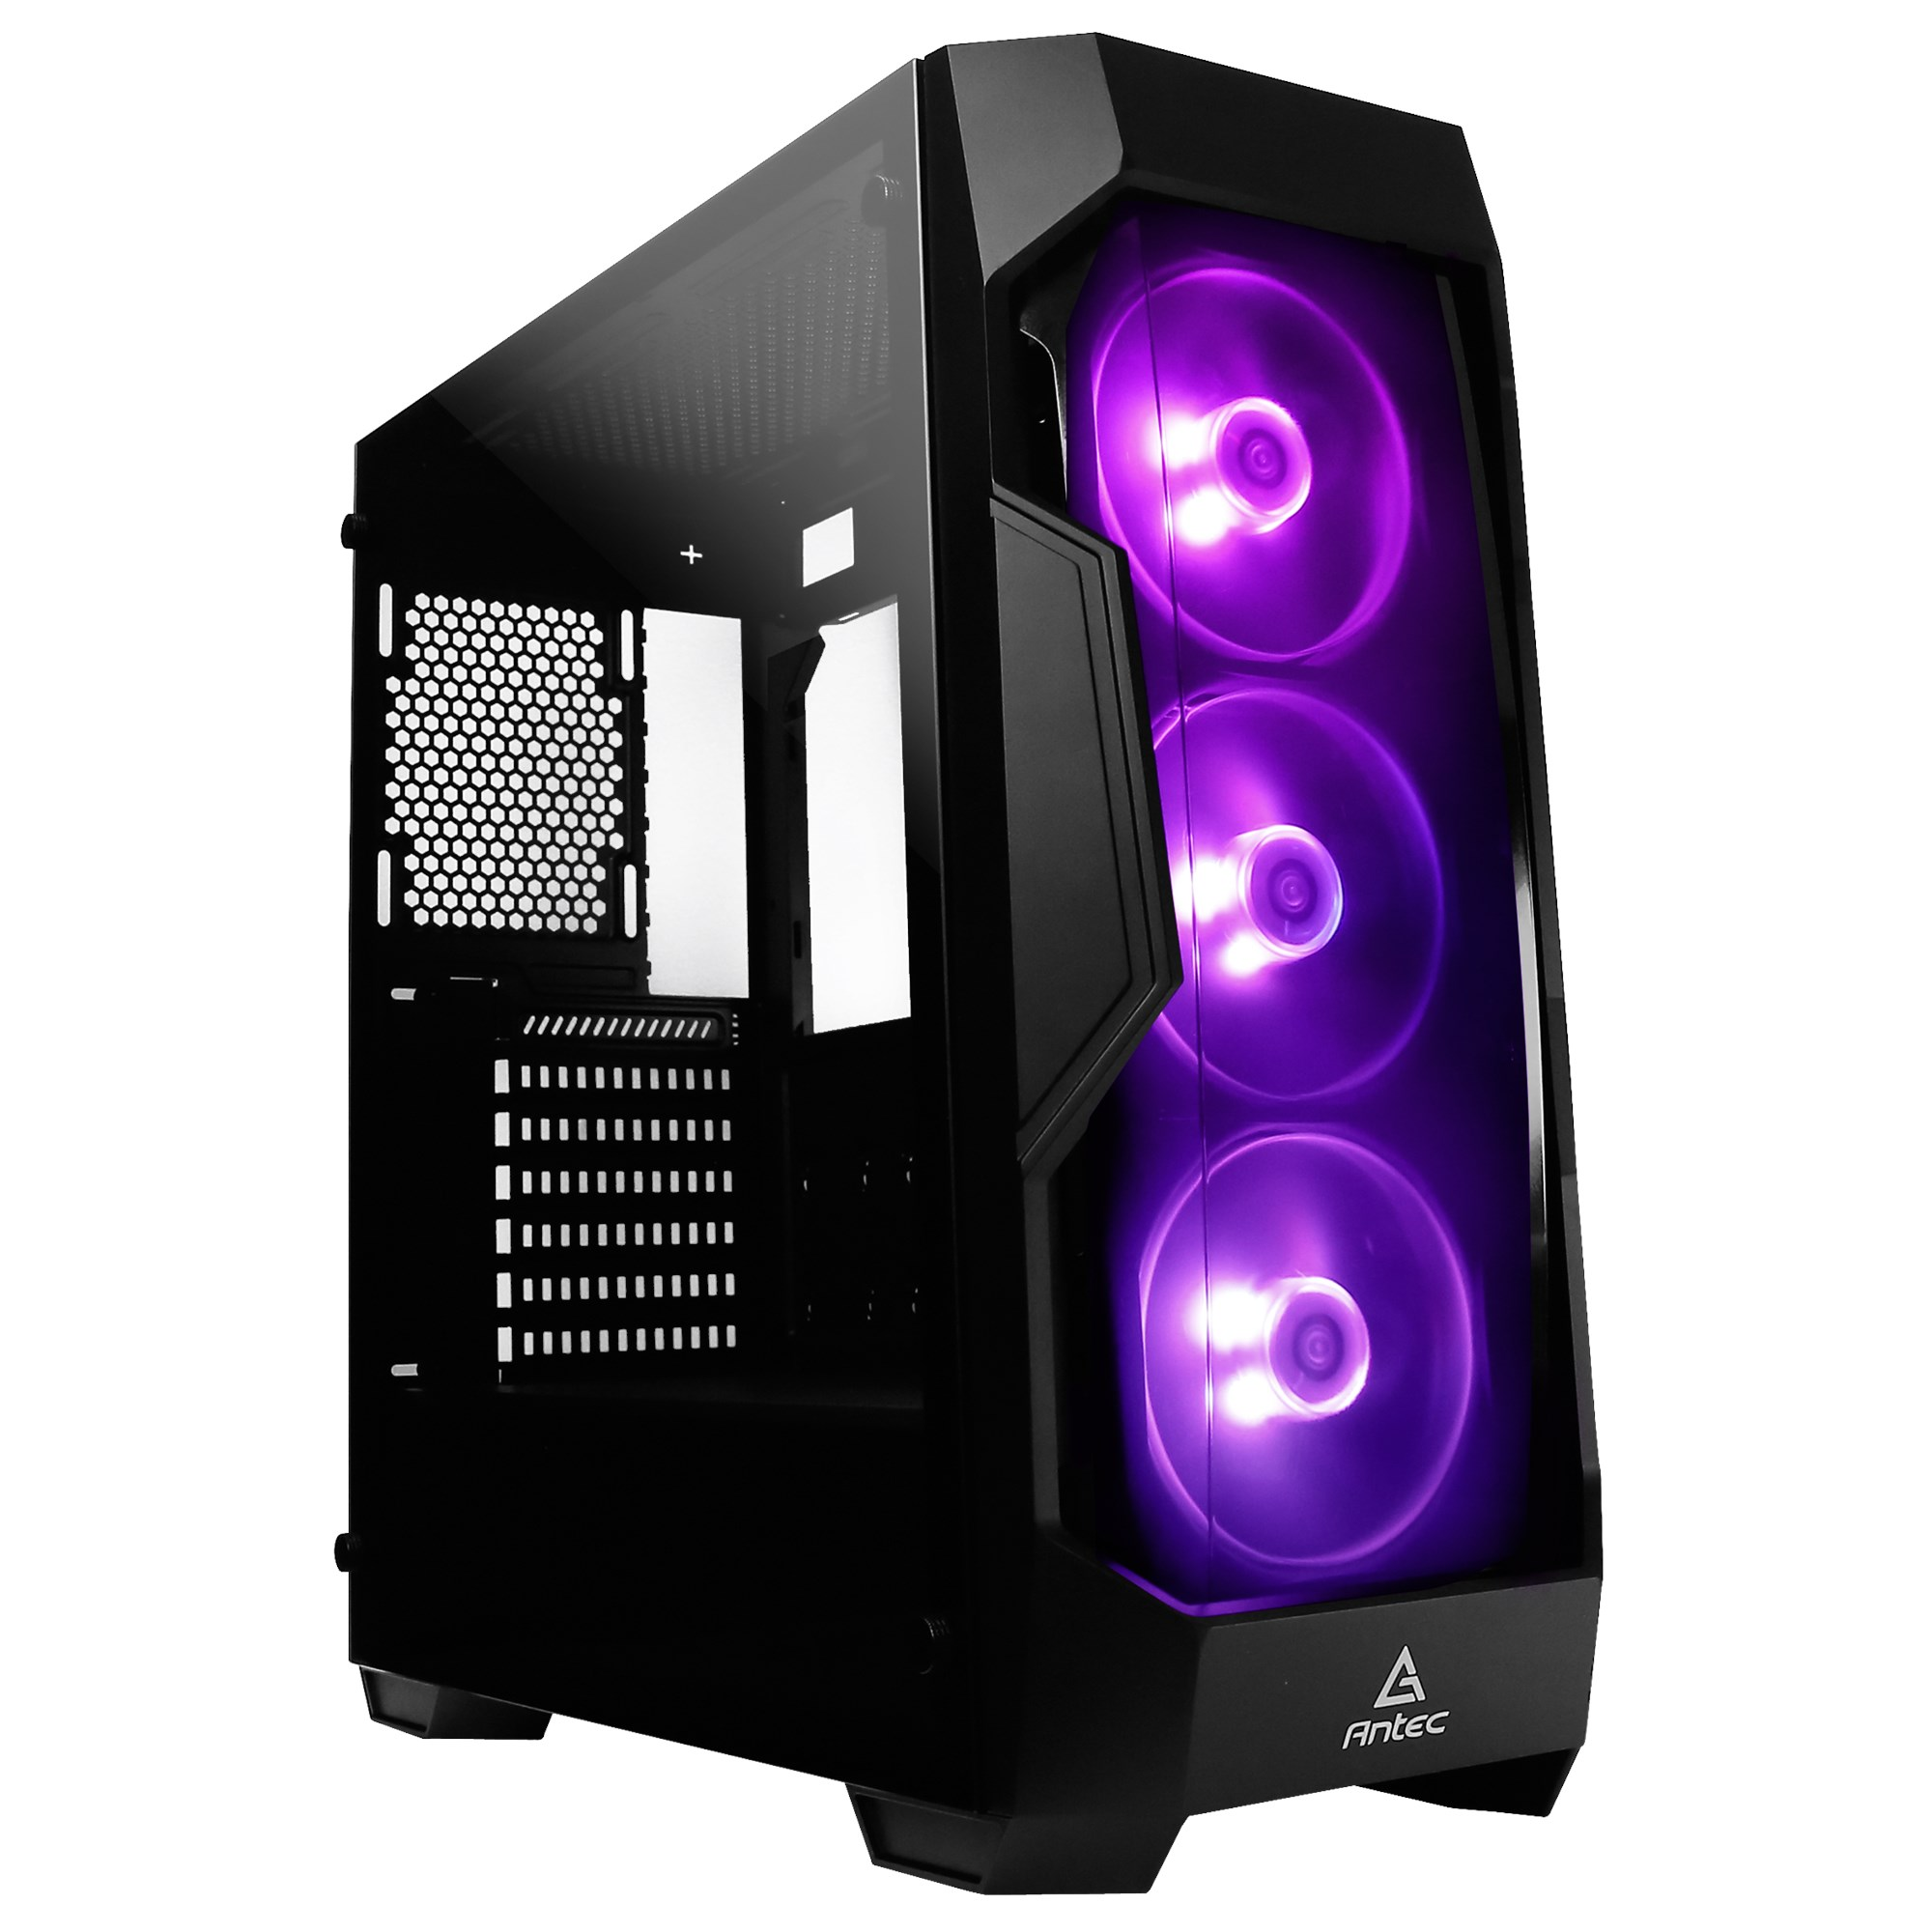 StormX Gaming PC